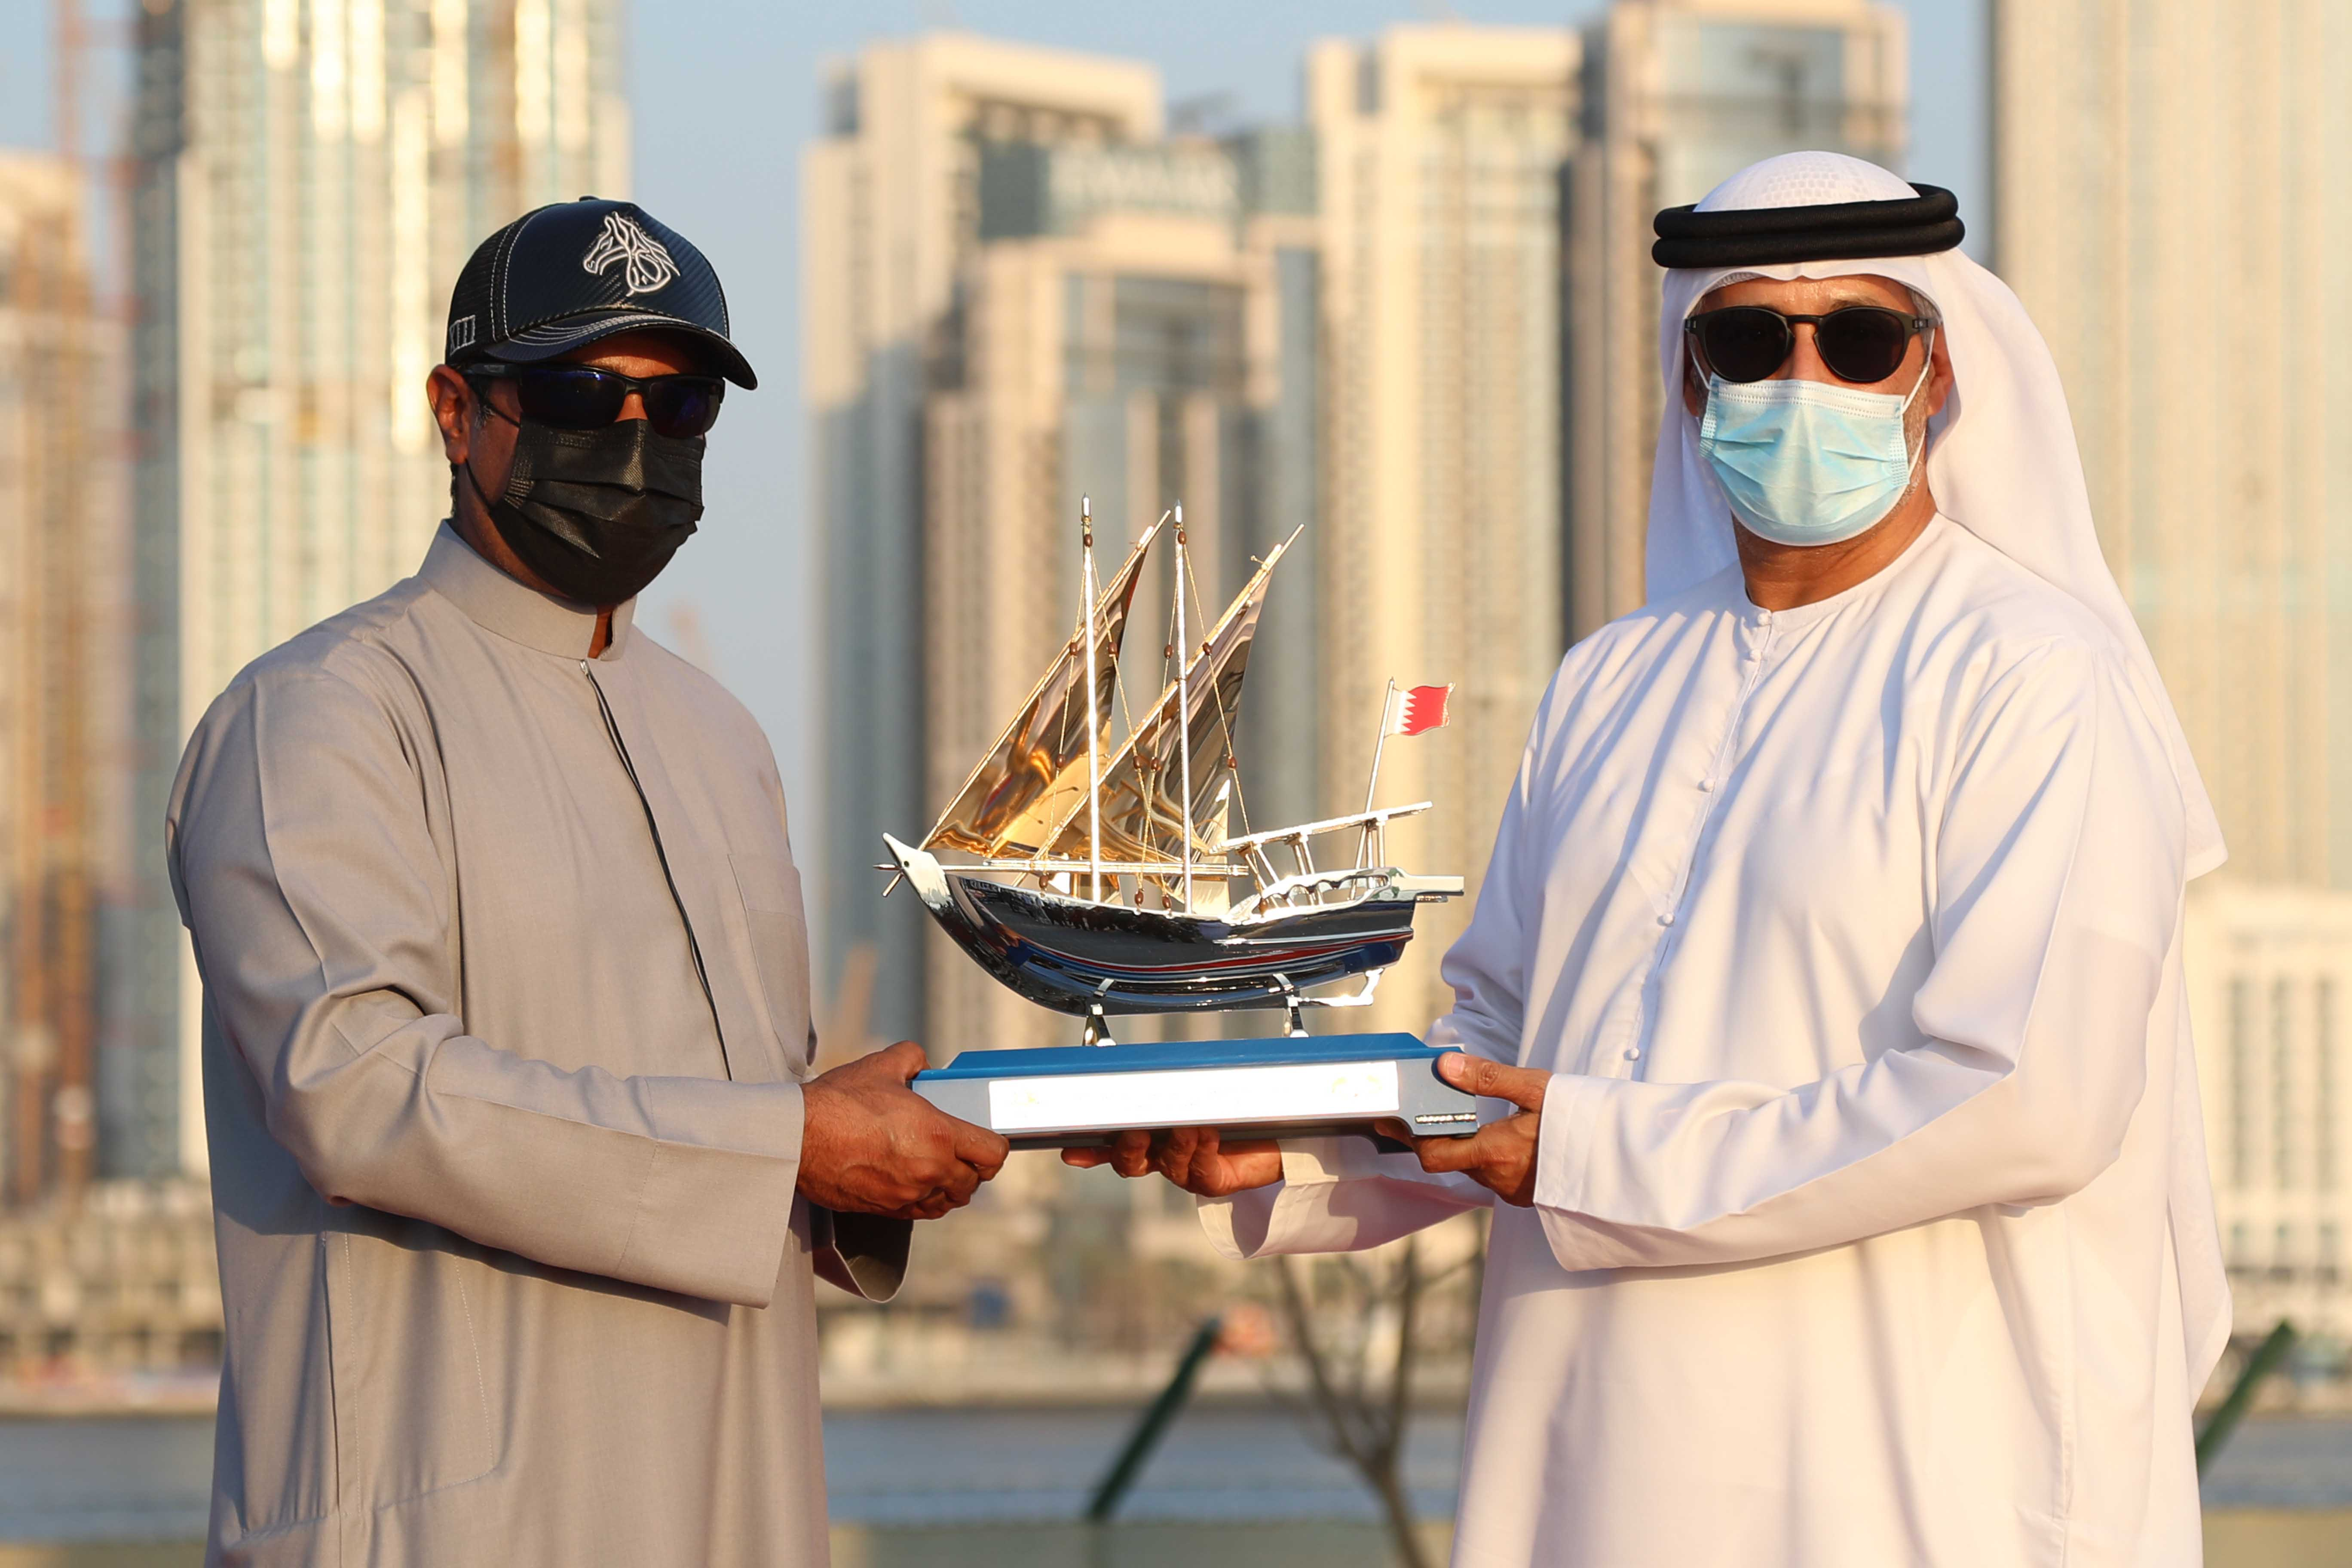 The Bahraini Olympic Committee honors (DIMC) and Mohammed Hareb